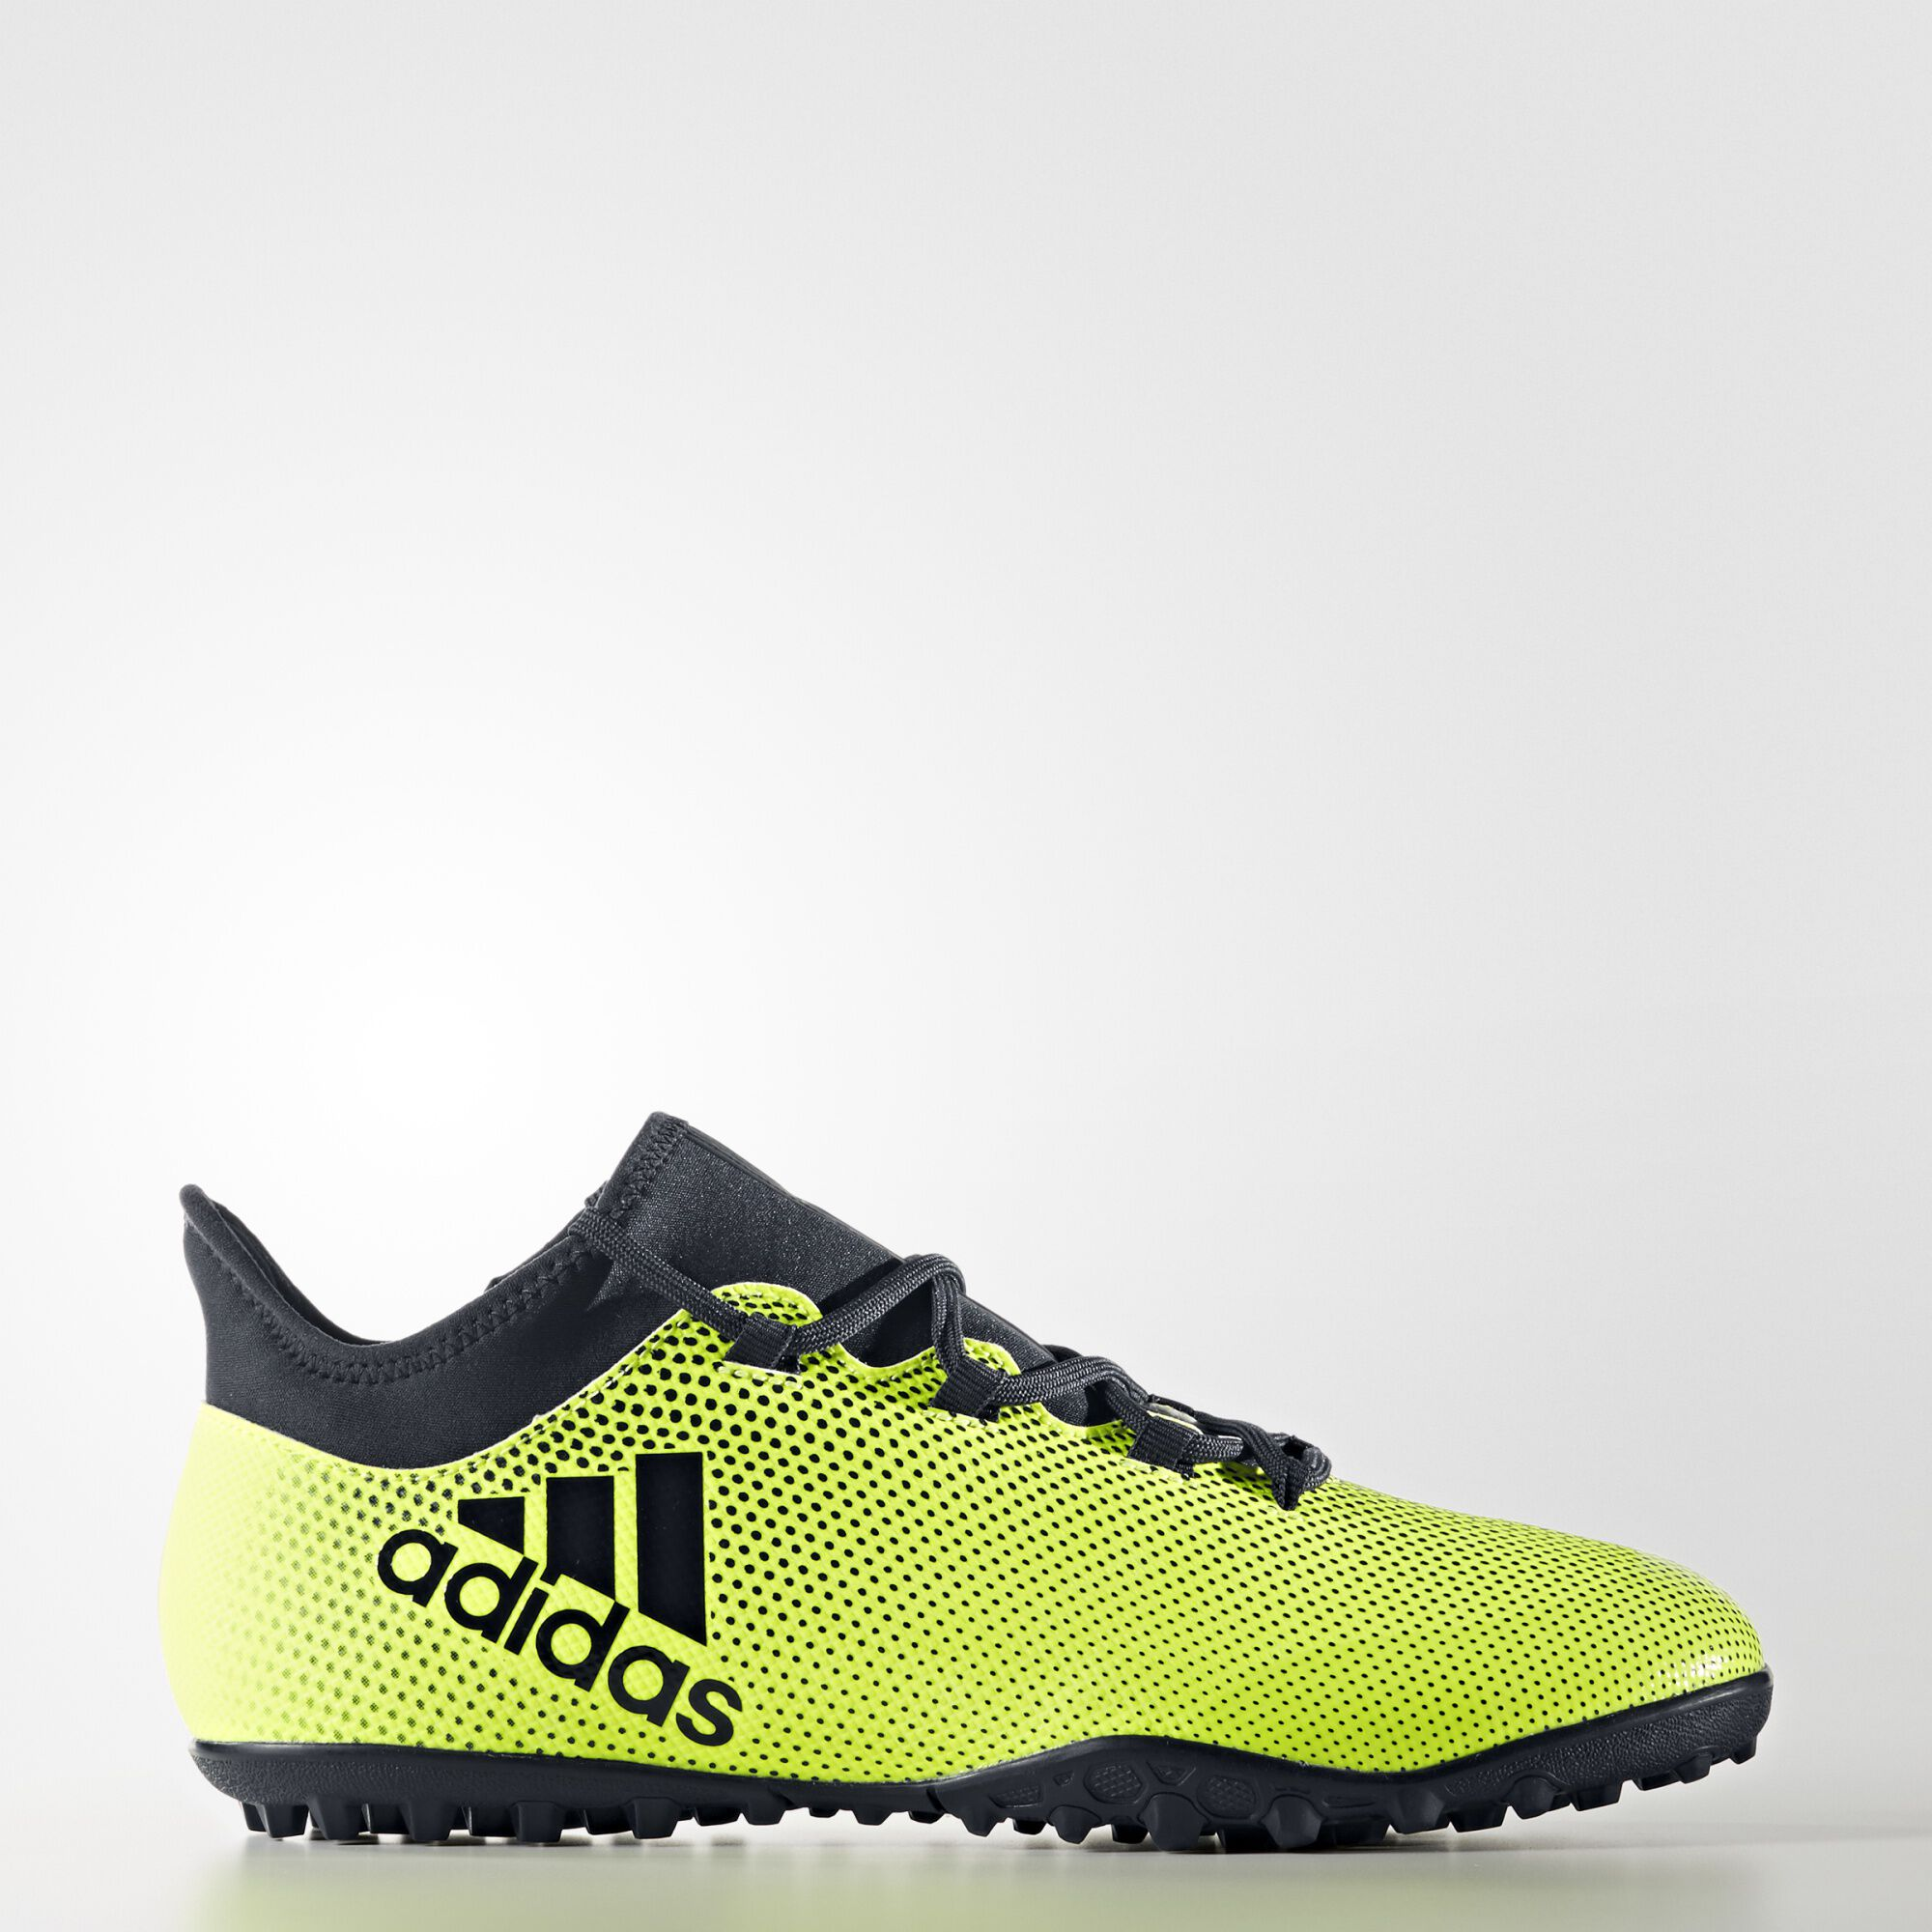 adidas shoes x